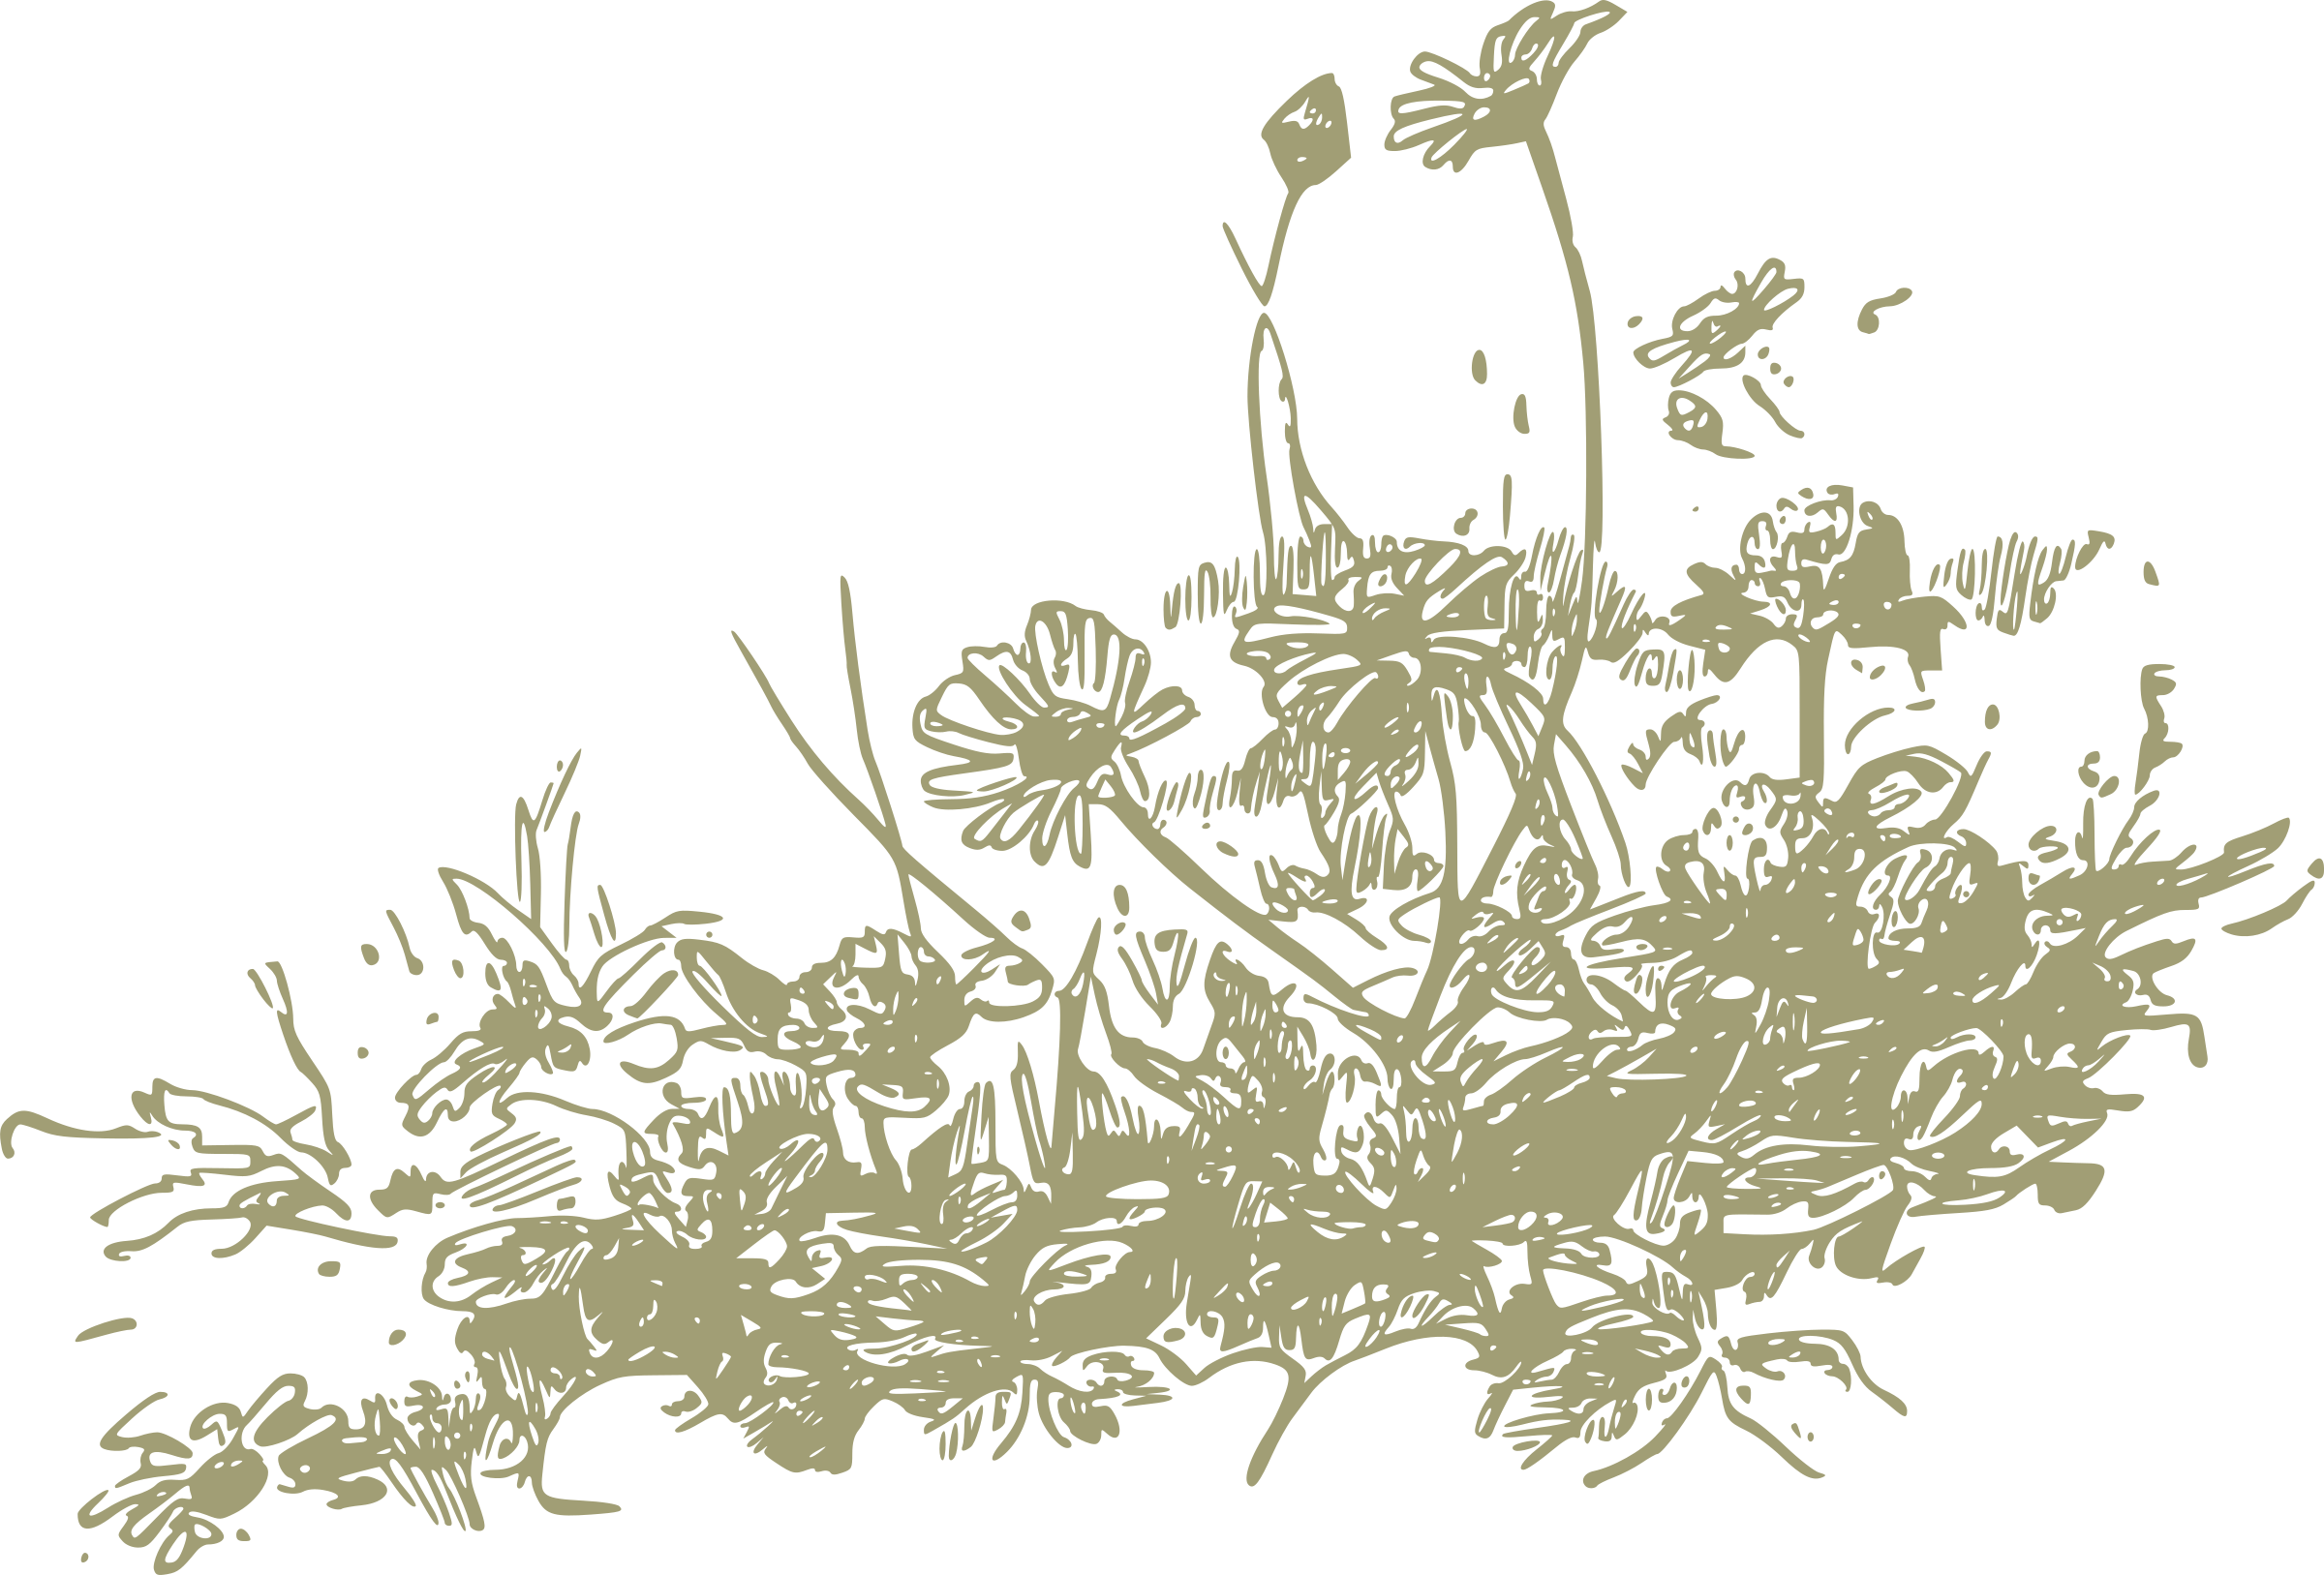 Big Image (Png) - Wildflowers, Transparent background PNG HD thumbnail